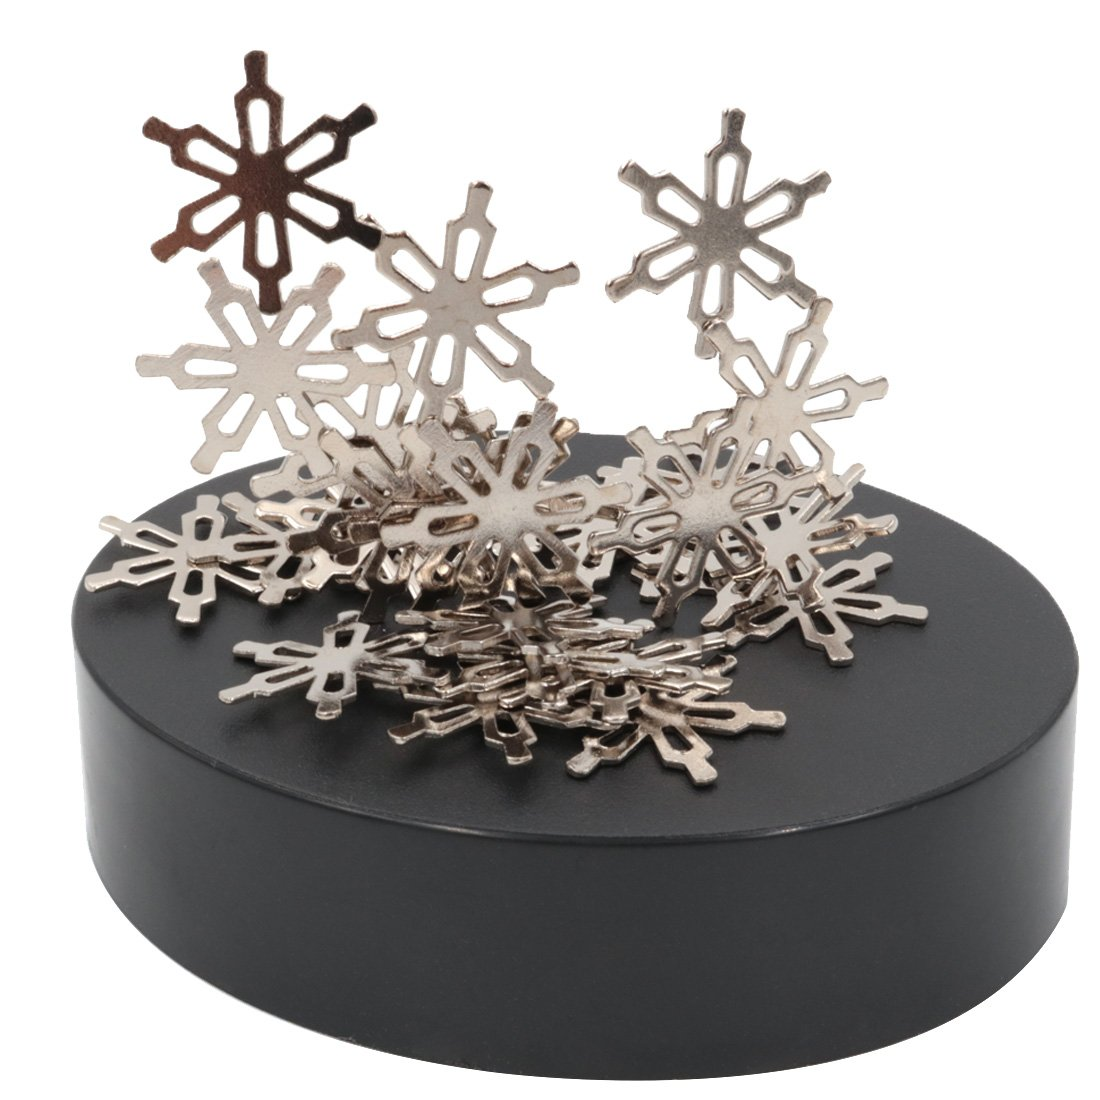 AblueA Magnetic Sculpture Desk Toy for Stress Relief and Intelligence Development (Oval Base - Snowflakes)